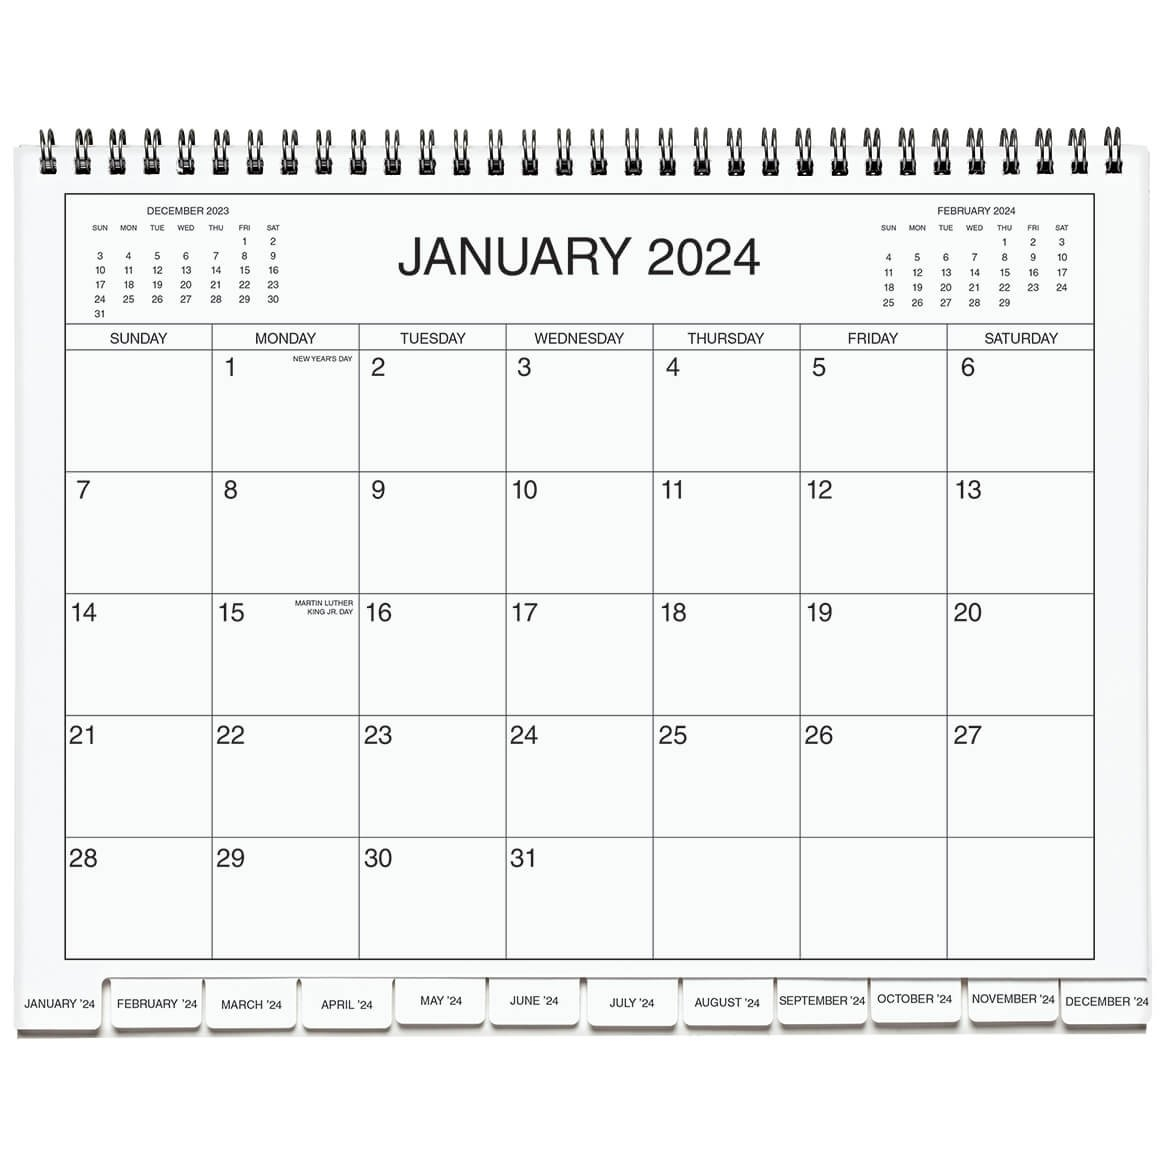 Five Year Calendar Planner 2021 2025 Miles Kimball - Calendar Template 2020 within Calender 2021 To 2025 Photo